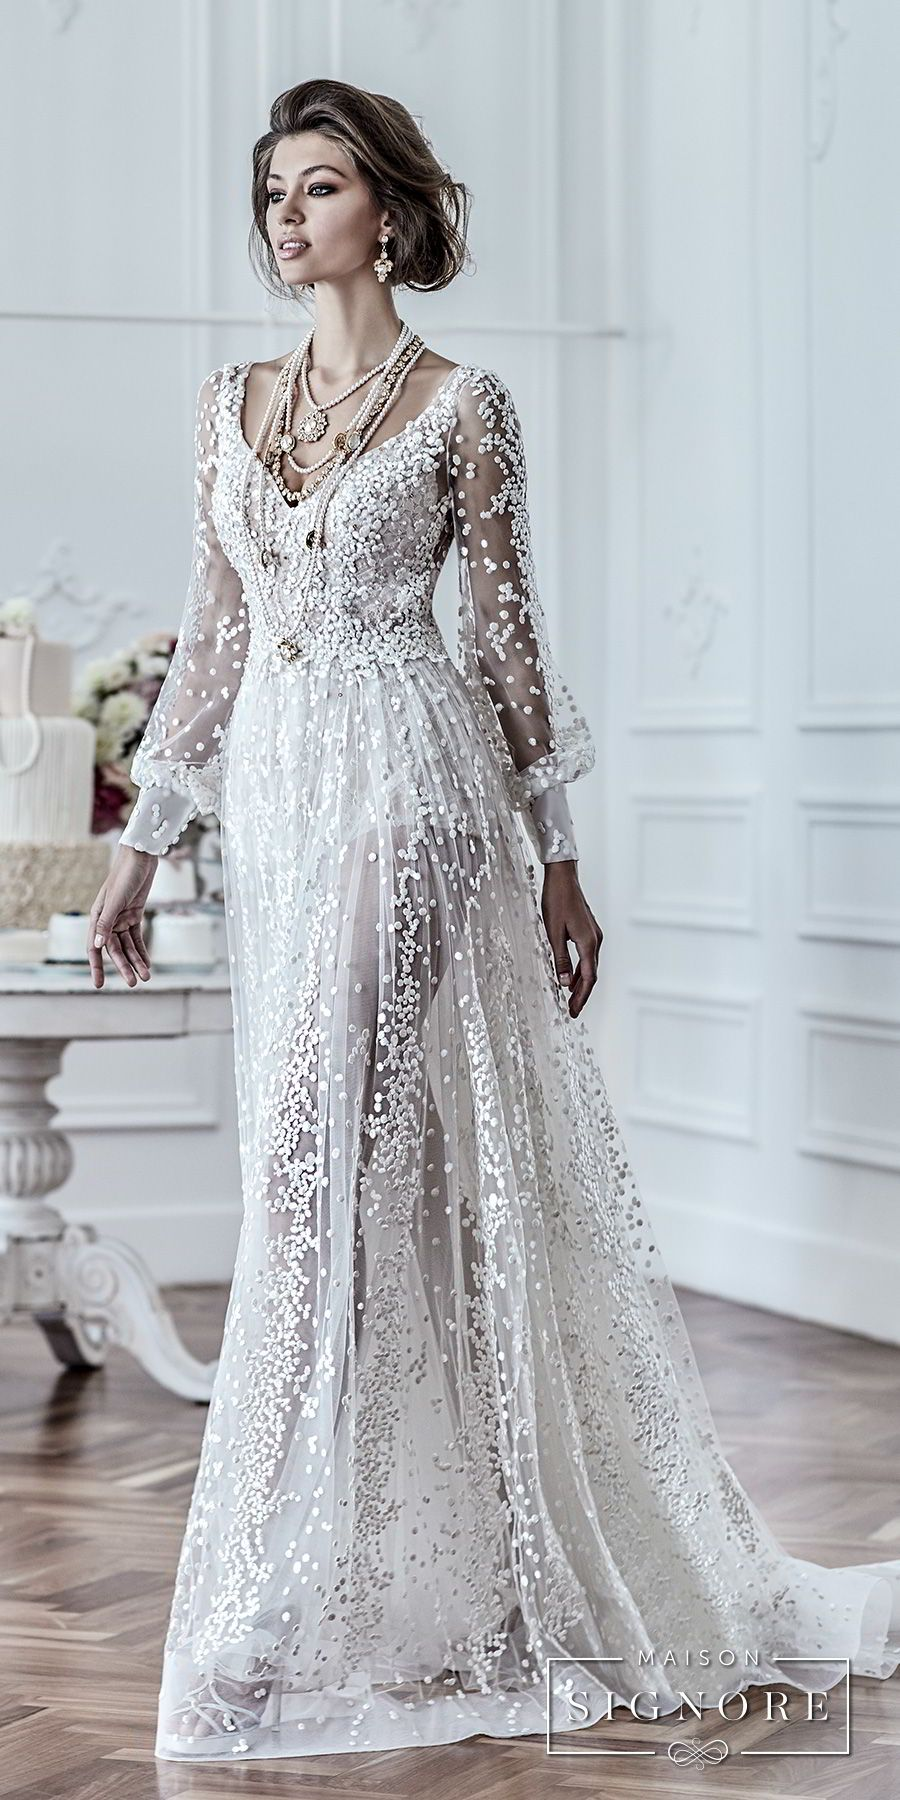 Maison signoreus stunning wedding dresses u you donut want to